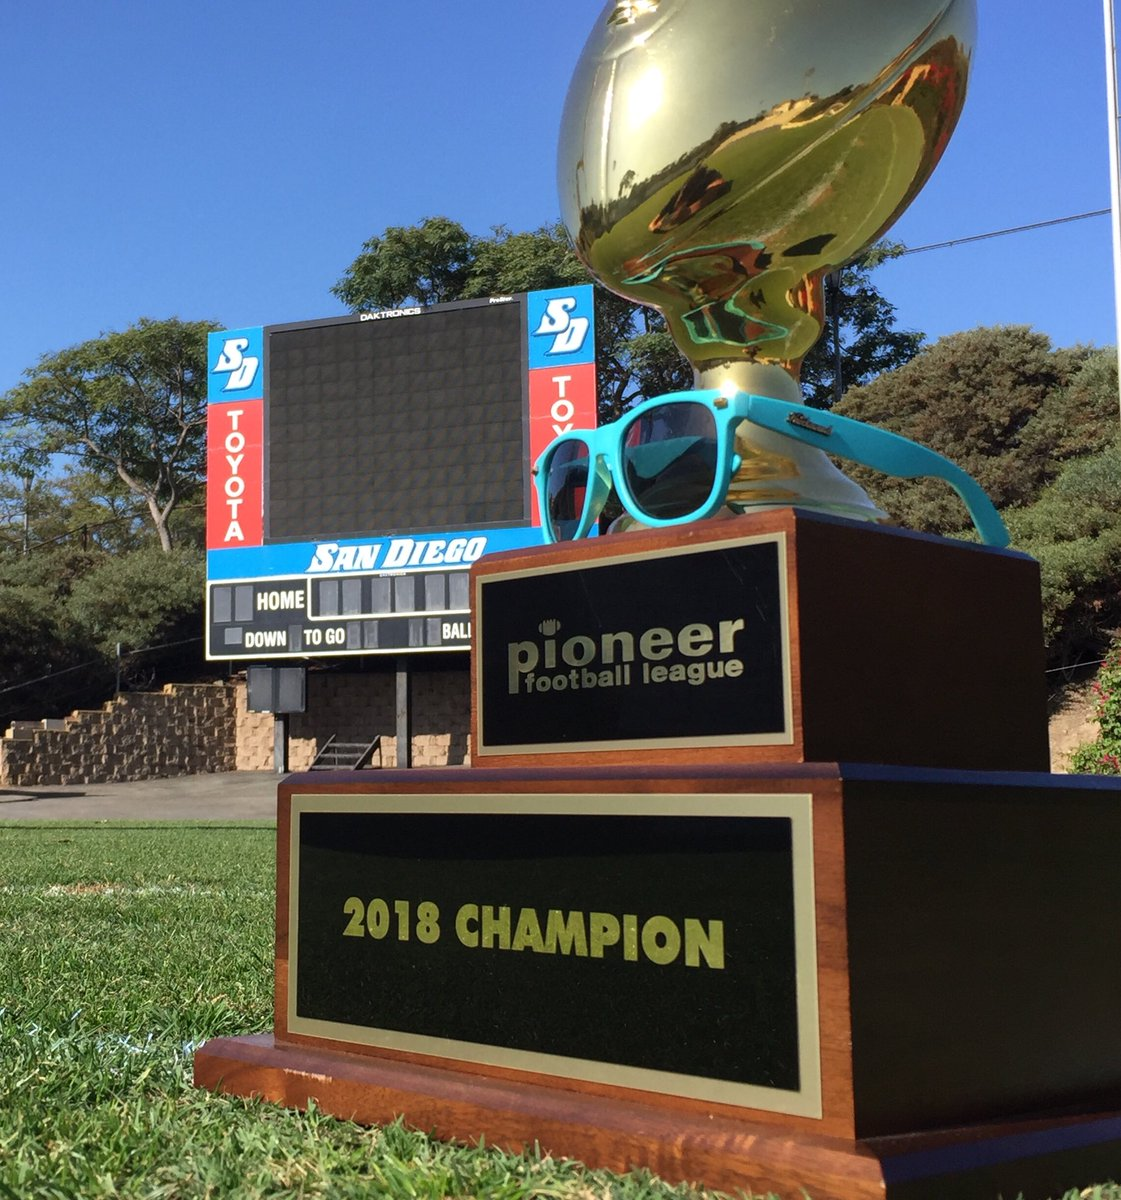 Lights are bright on Saturdays! @USDFootball would like to thank @Knockaround for you support through camp  #ballinatthebeach #Toreros<br>http://pic.twitter.com/wYM6Cw0FsJ – à Torero Stadium